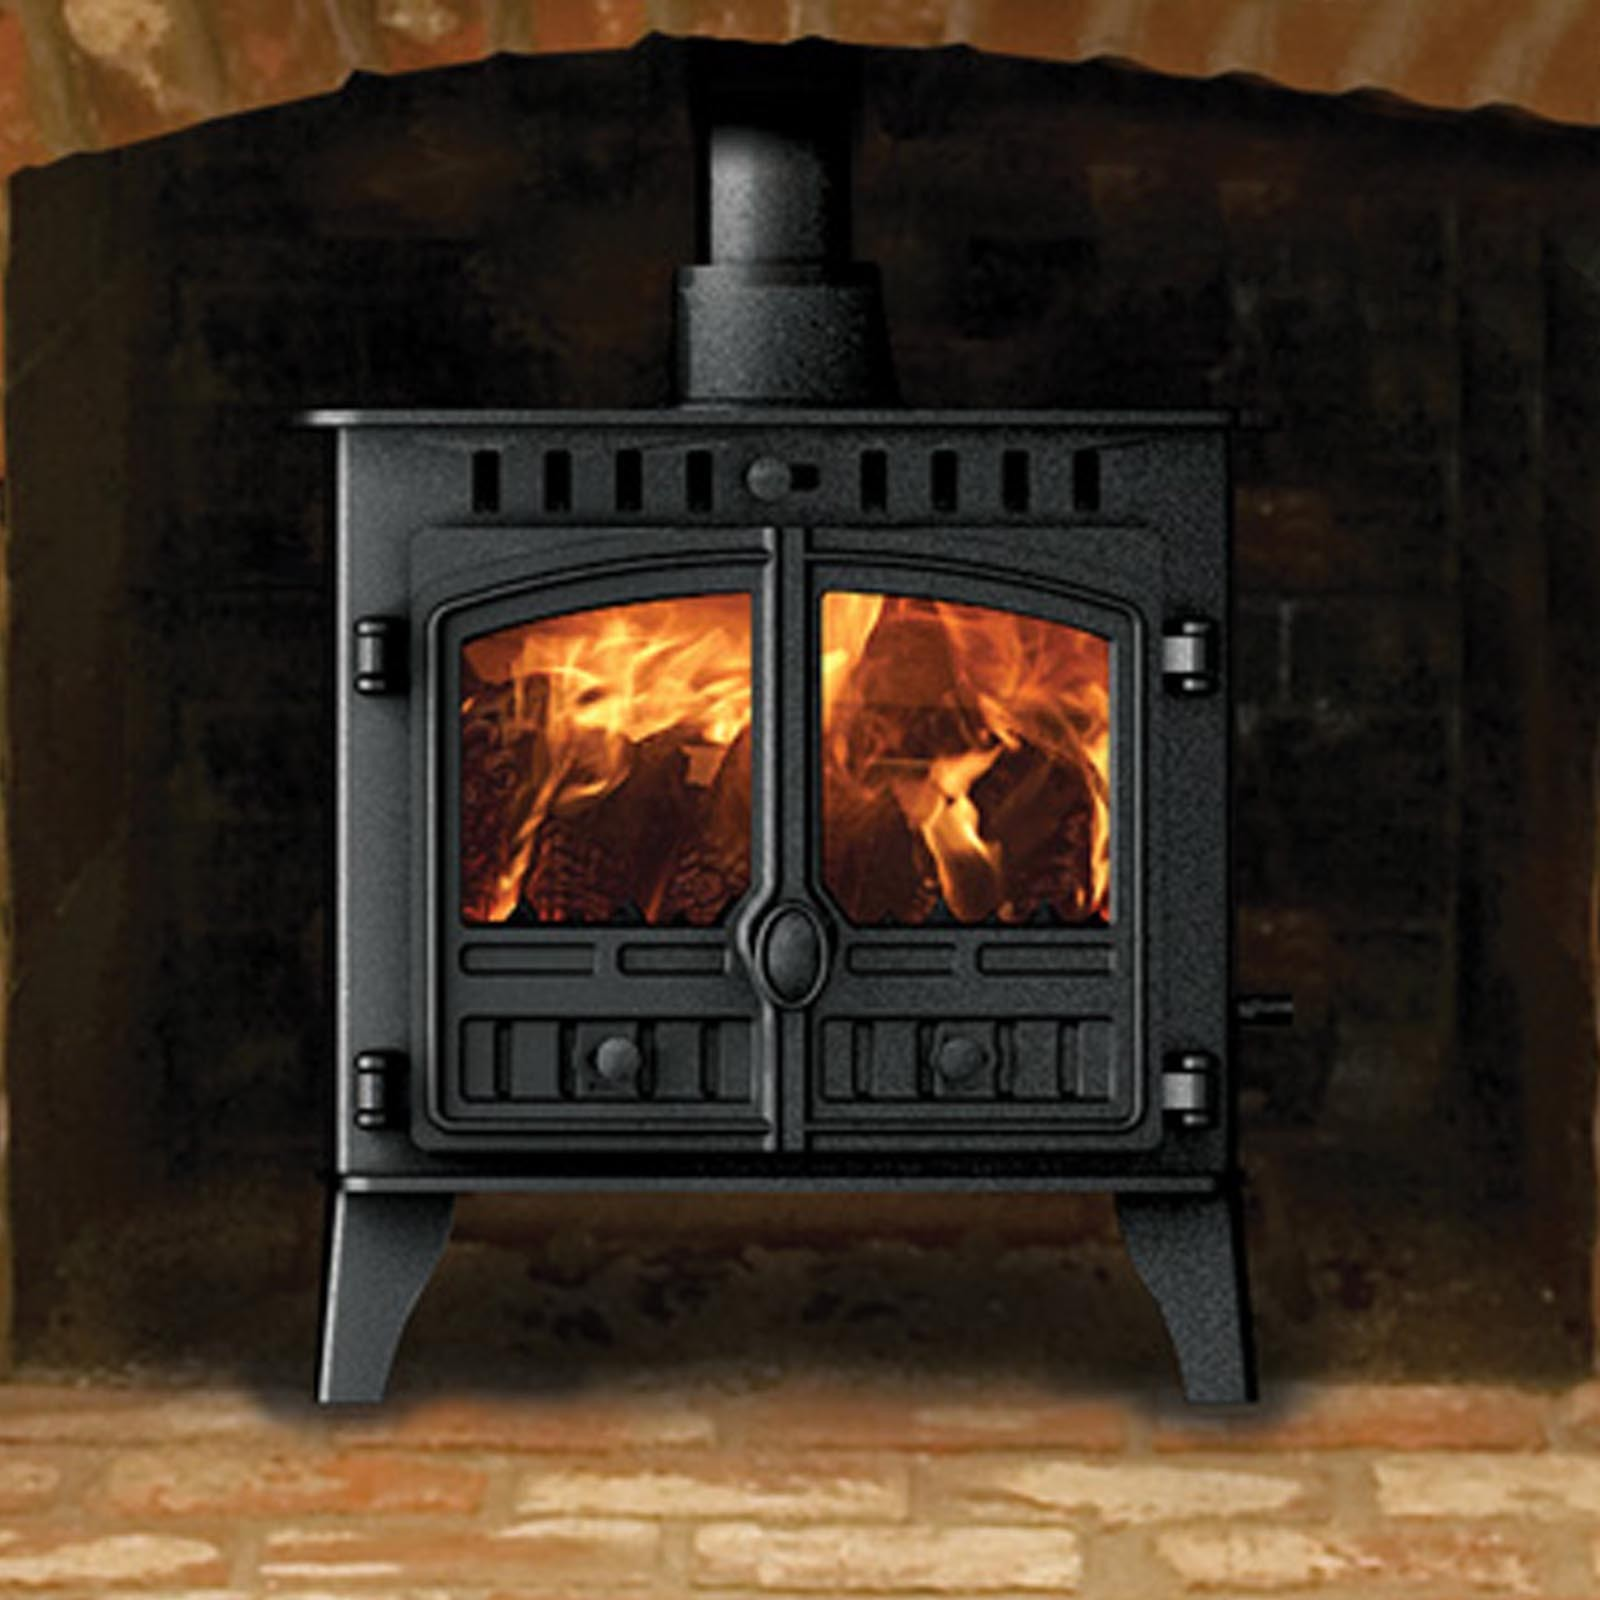 Best uk prices hunter herald 5 slimline multi fuel wood for Wood burning stove for screened porch